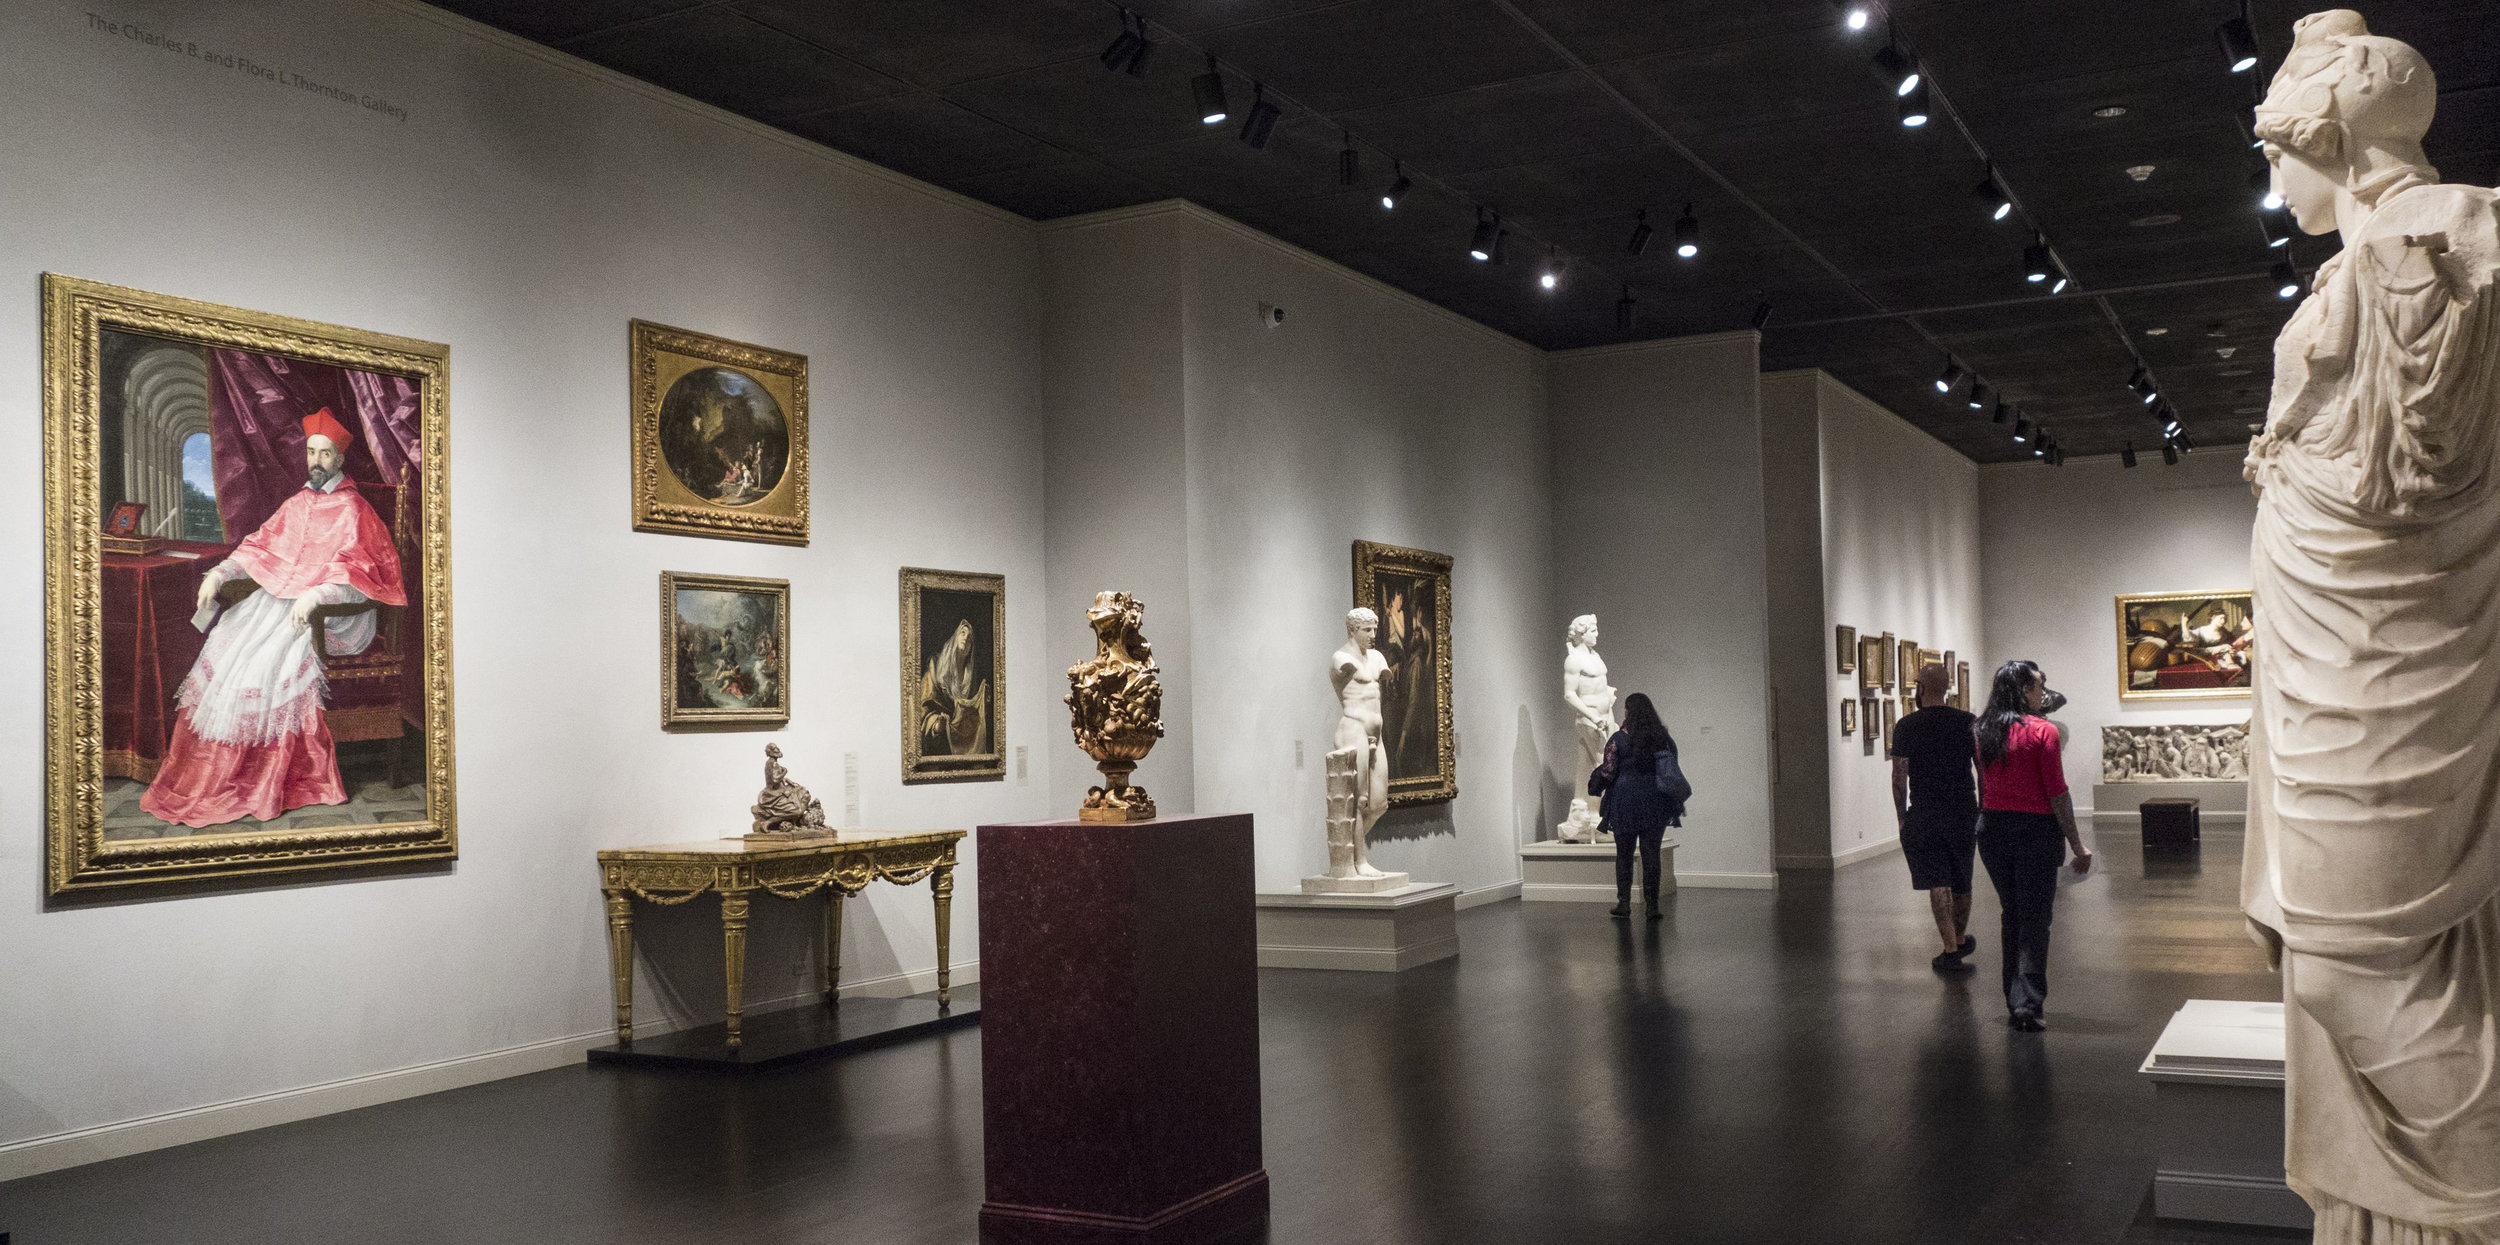 art-of-the-ancient-world-gallery-at-lacma--los-angeles--california-521738698-59ad5b55d088c00010afedc6.jpg